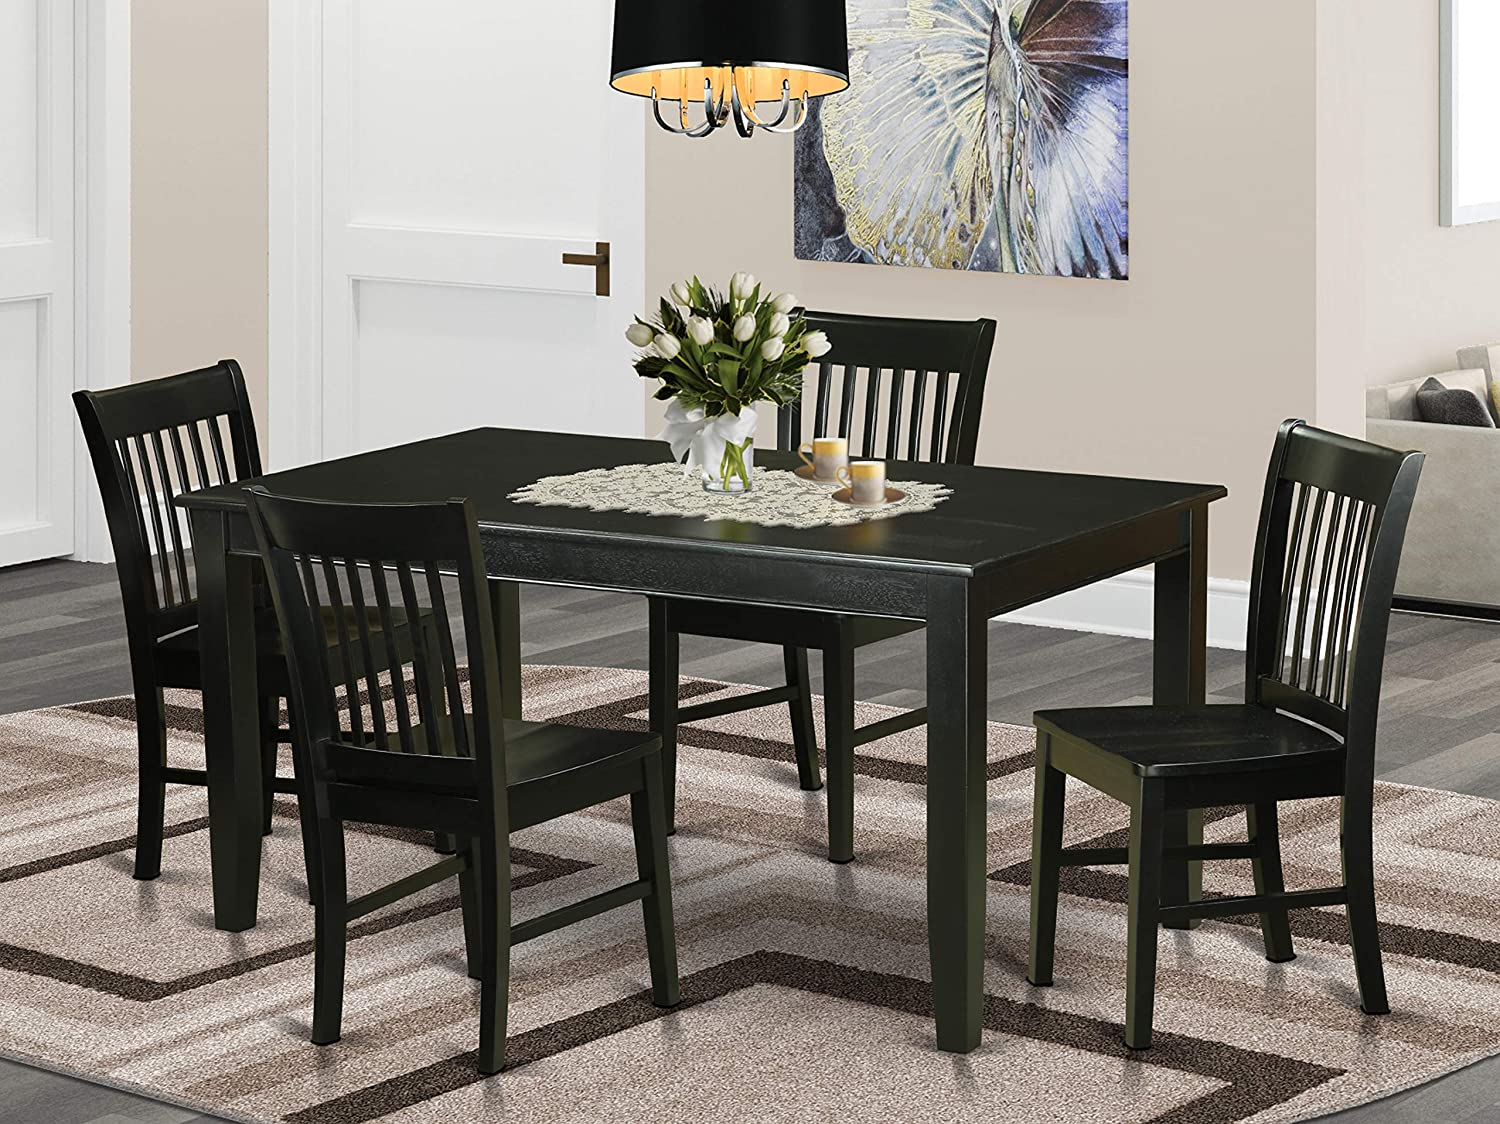 East West Furniture 9 Piece Kitchen Table Chairs Set Included a Rectangular  Modern Kitchen Table and 9 Wood Chairs   Solid Wood Mid Century Dining ...